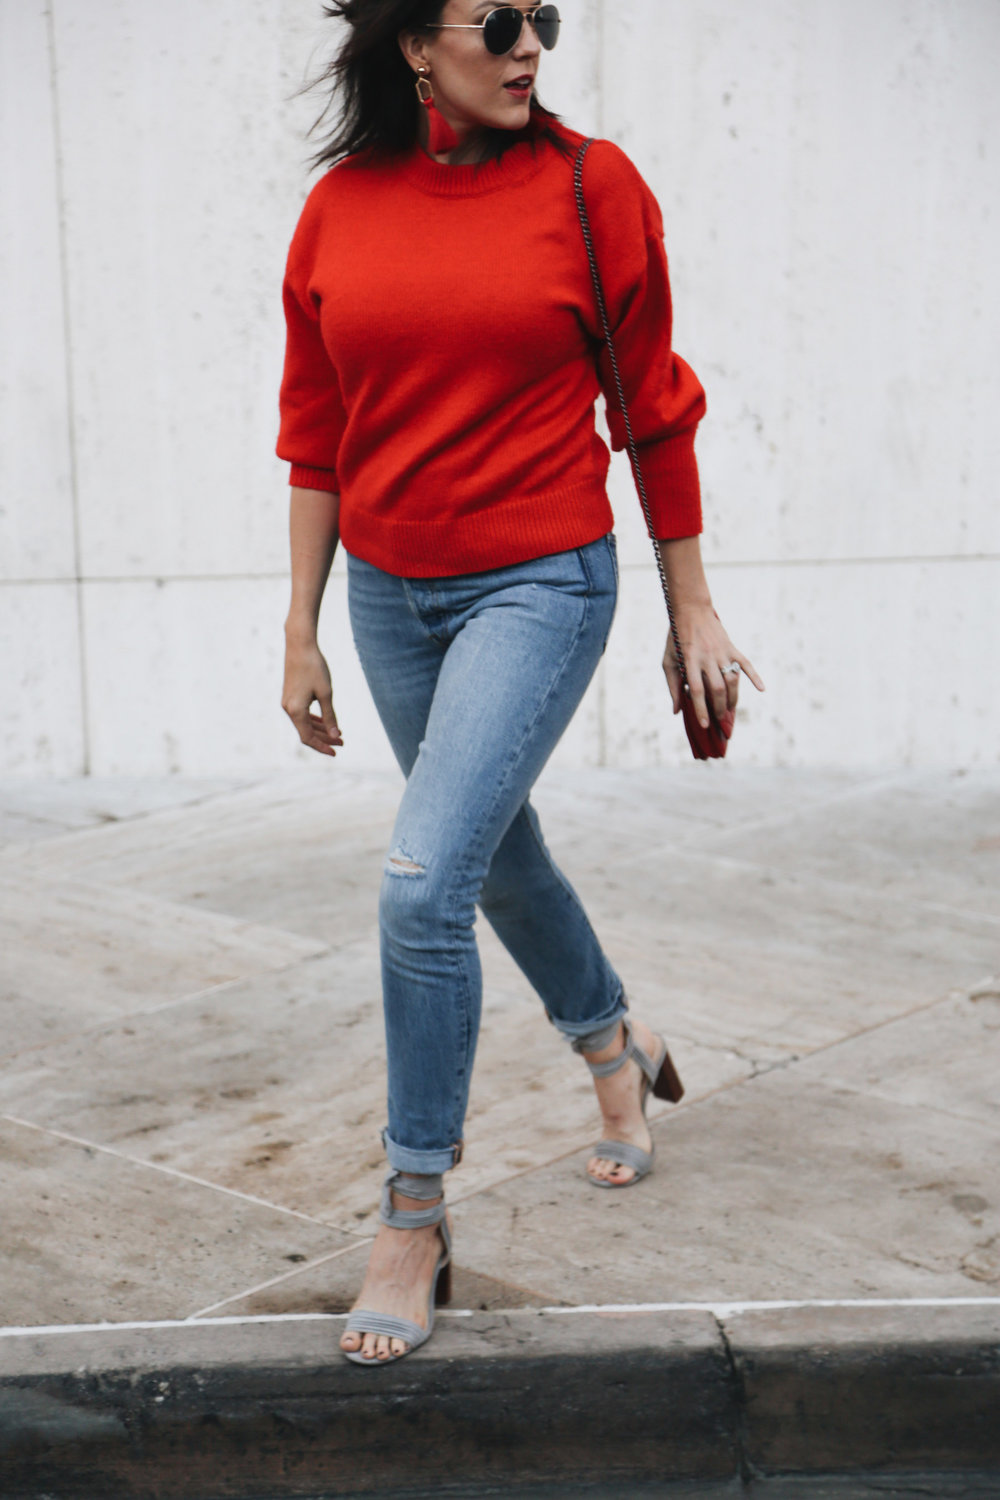 H&M red sweater4.jpg